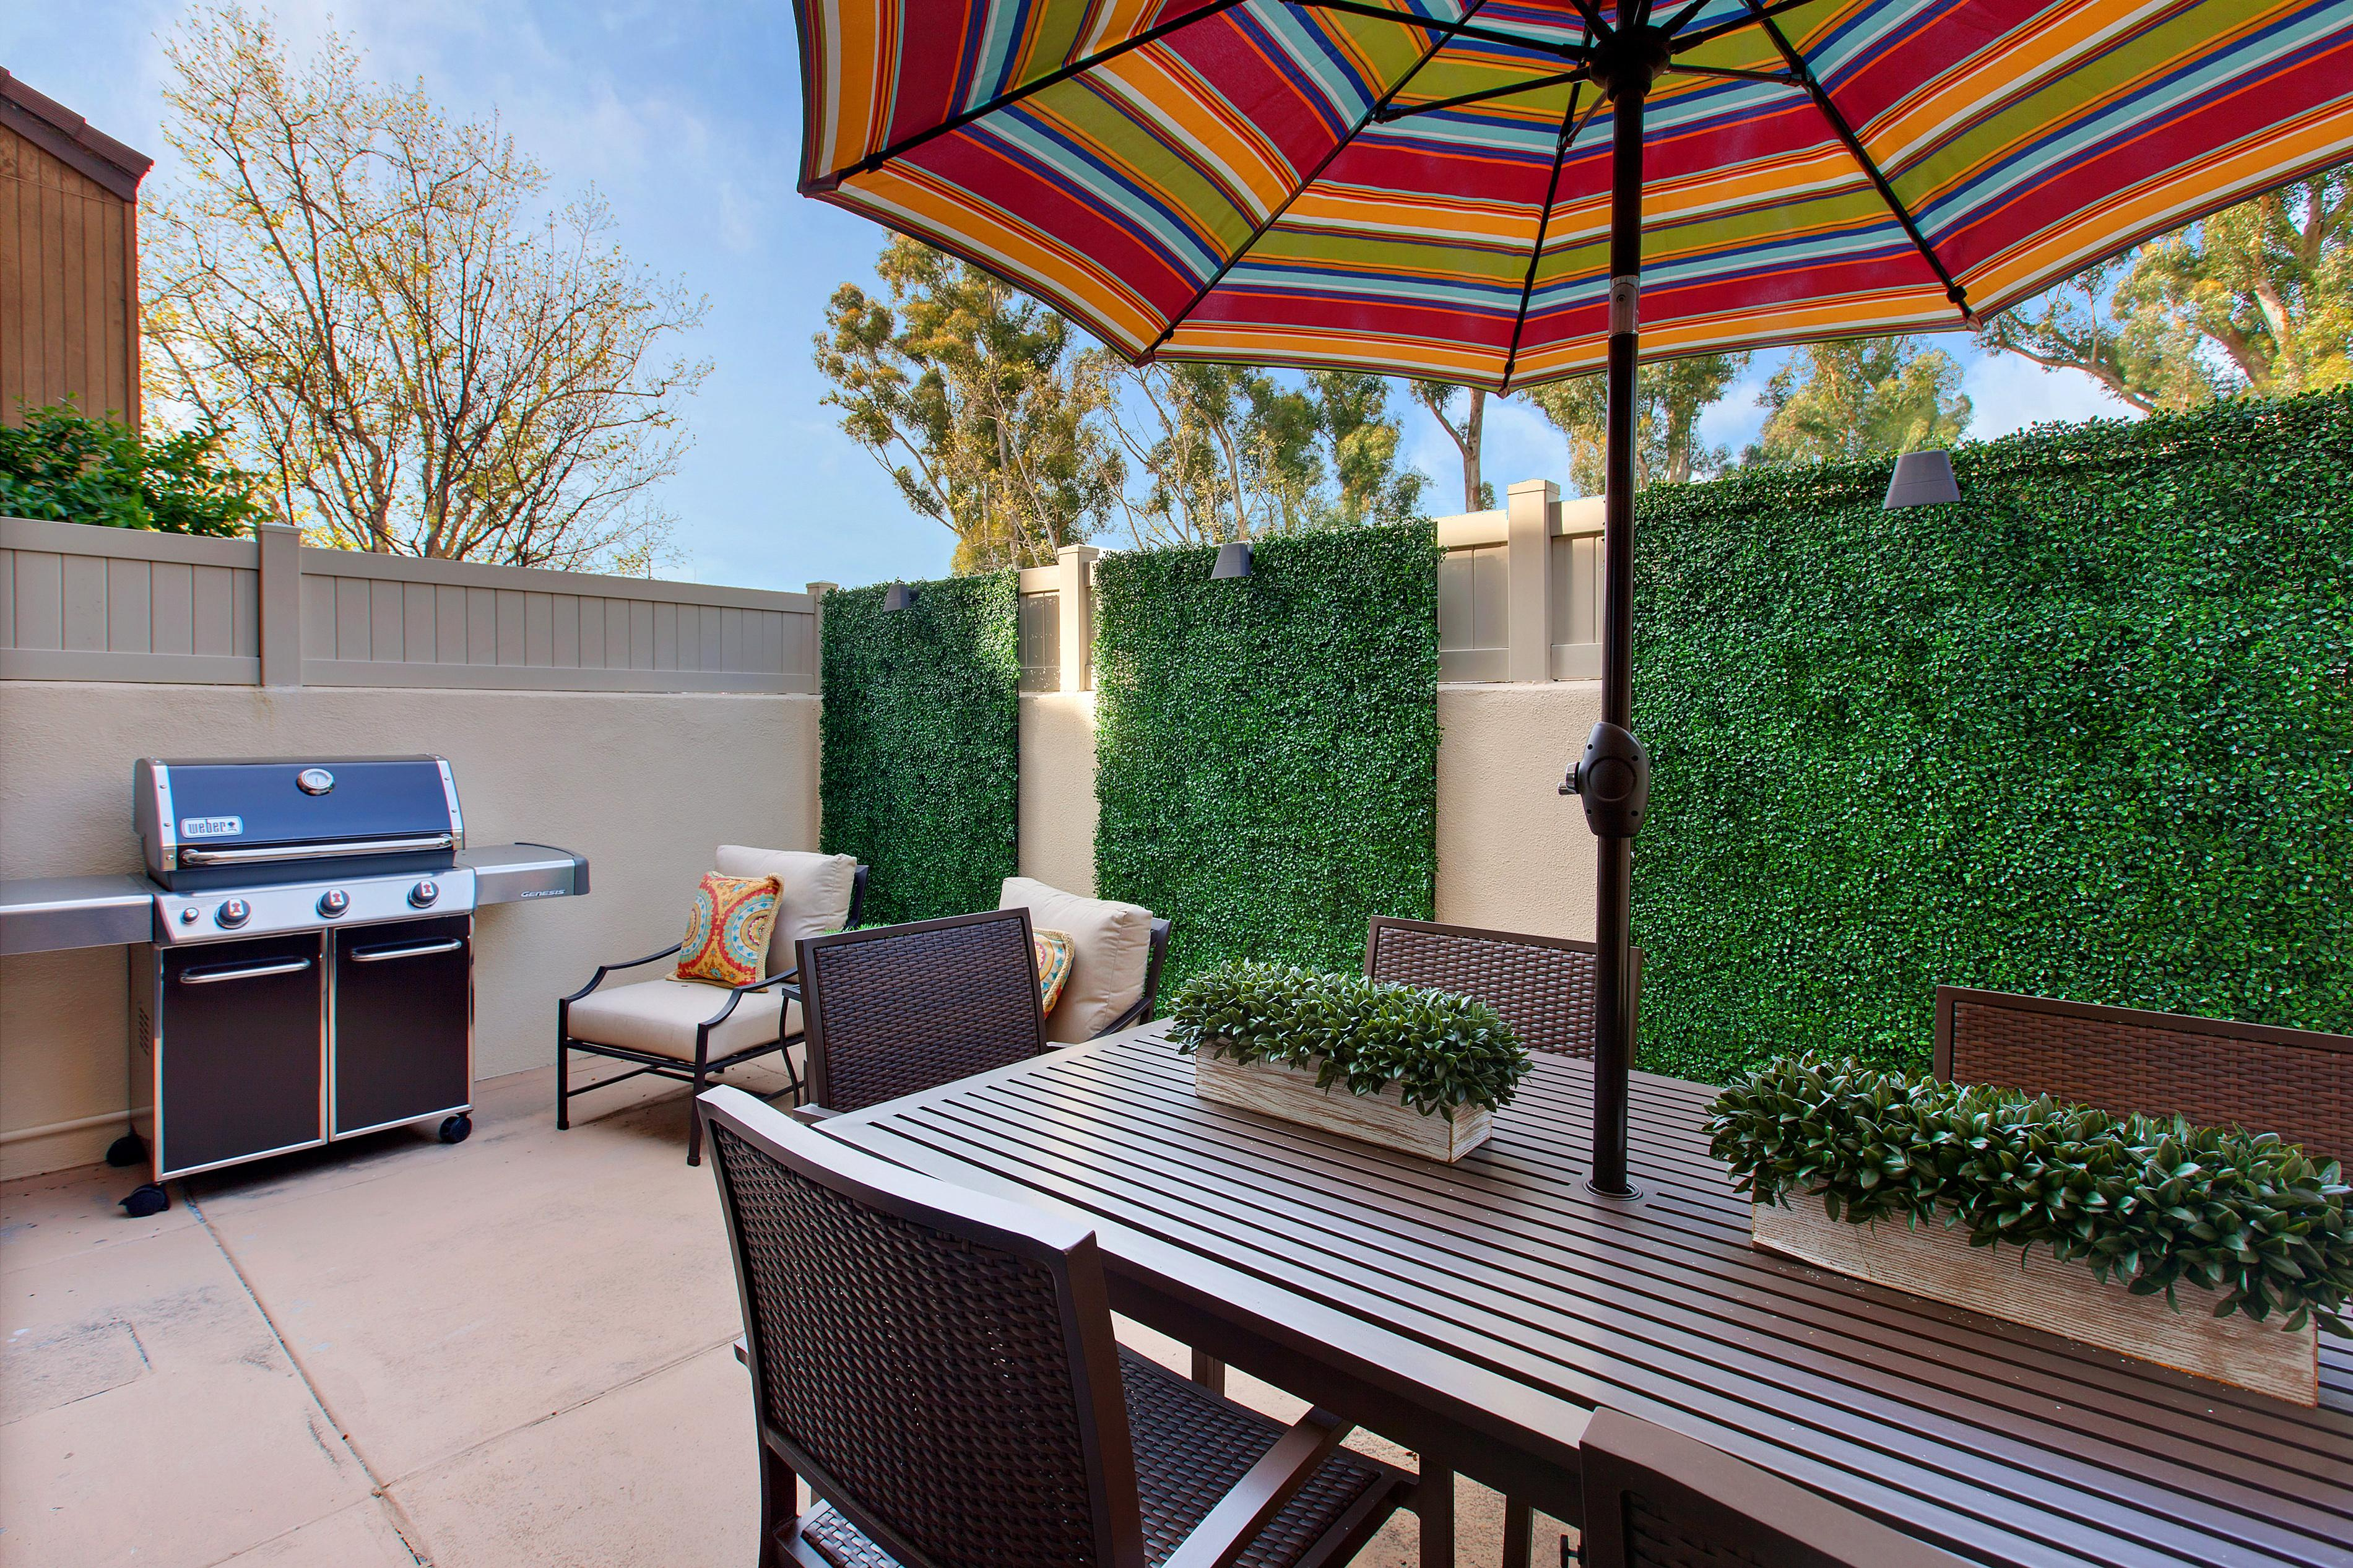 Fire up the grill and dine al fresco on the private patio.